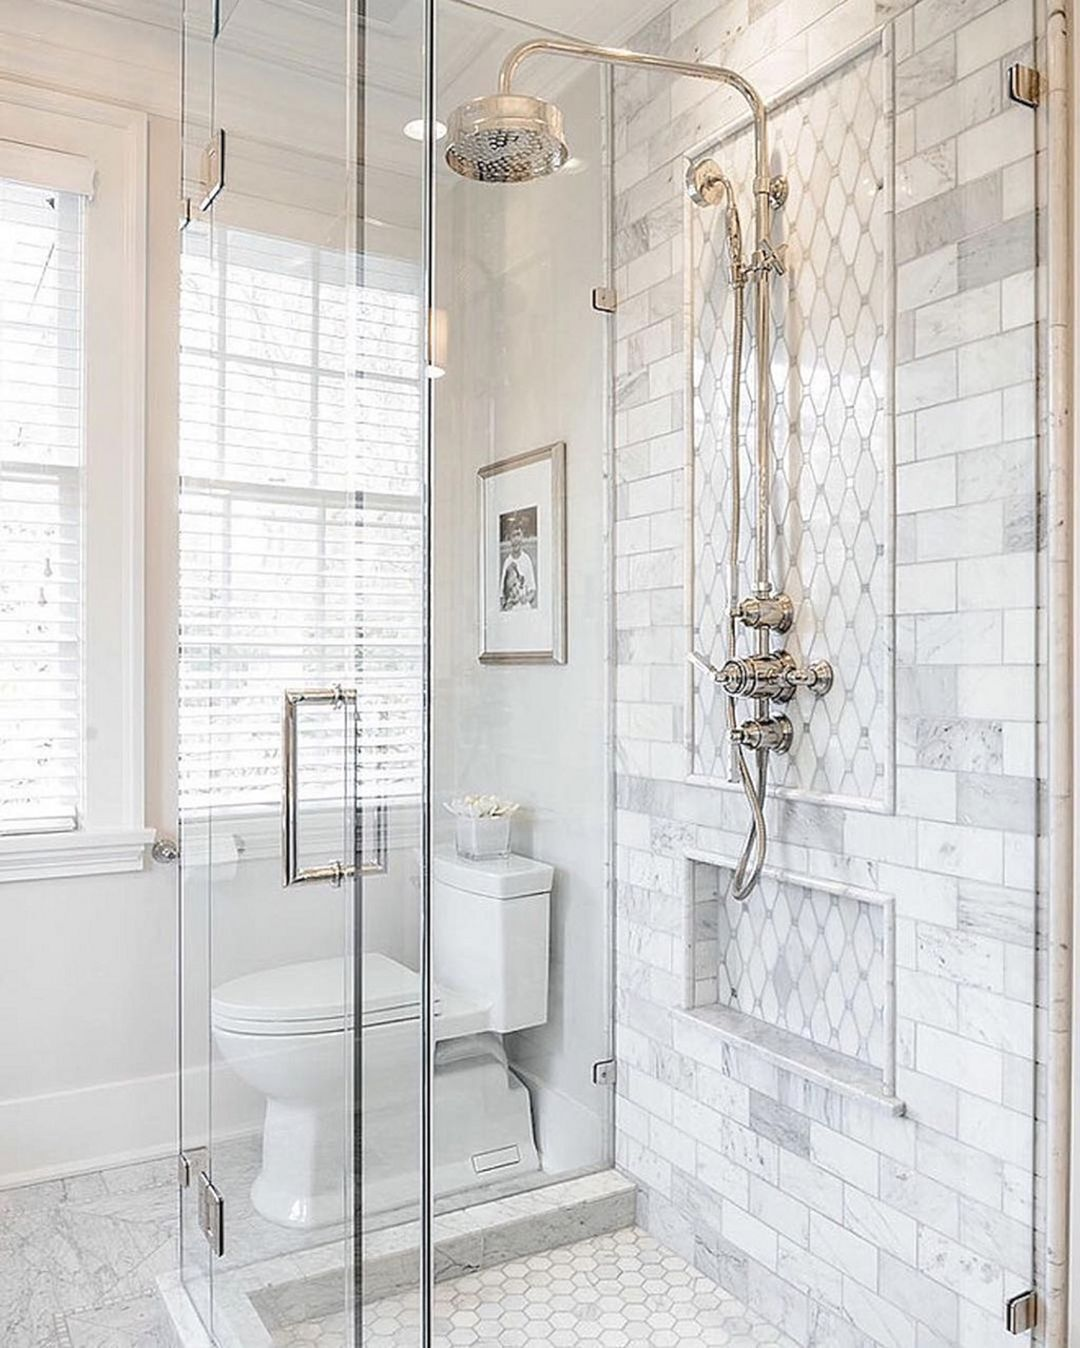 115 Extraordinary Small Bathroom Designs For Small Space 031 | Small ...